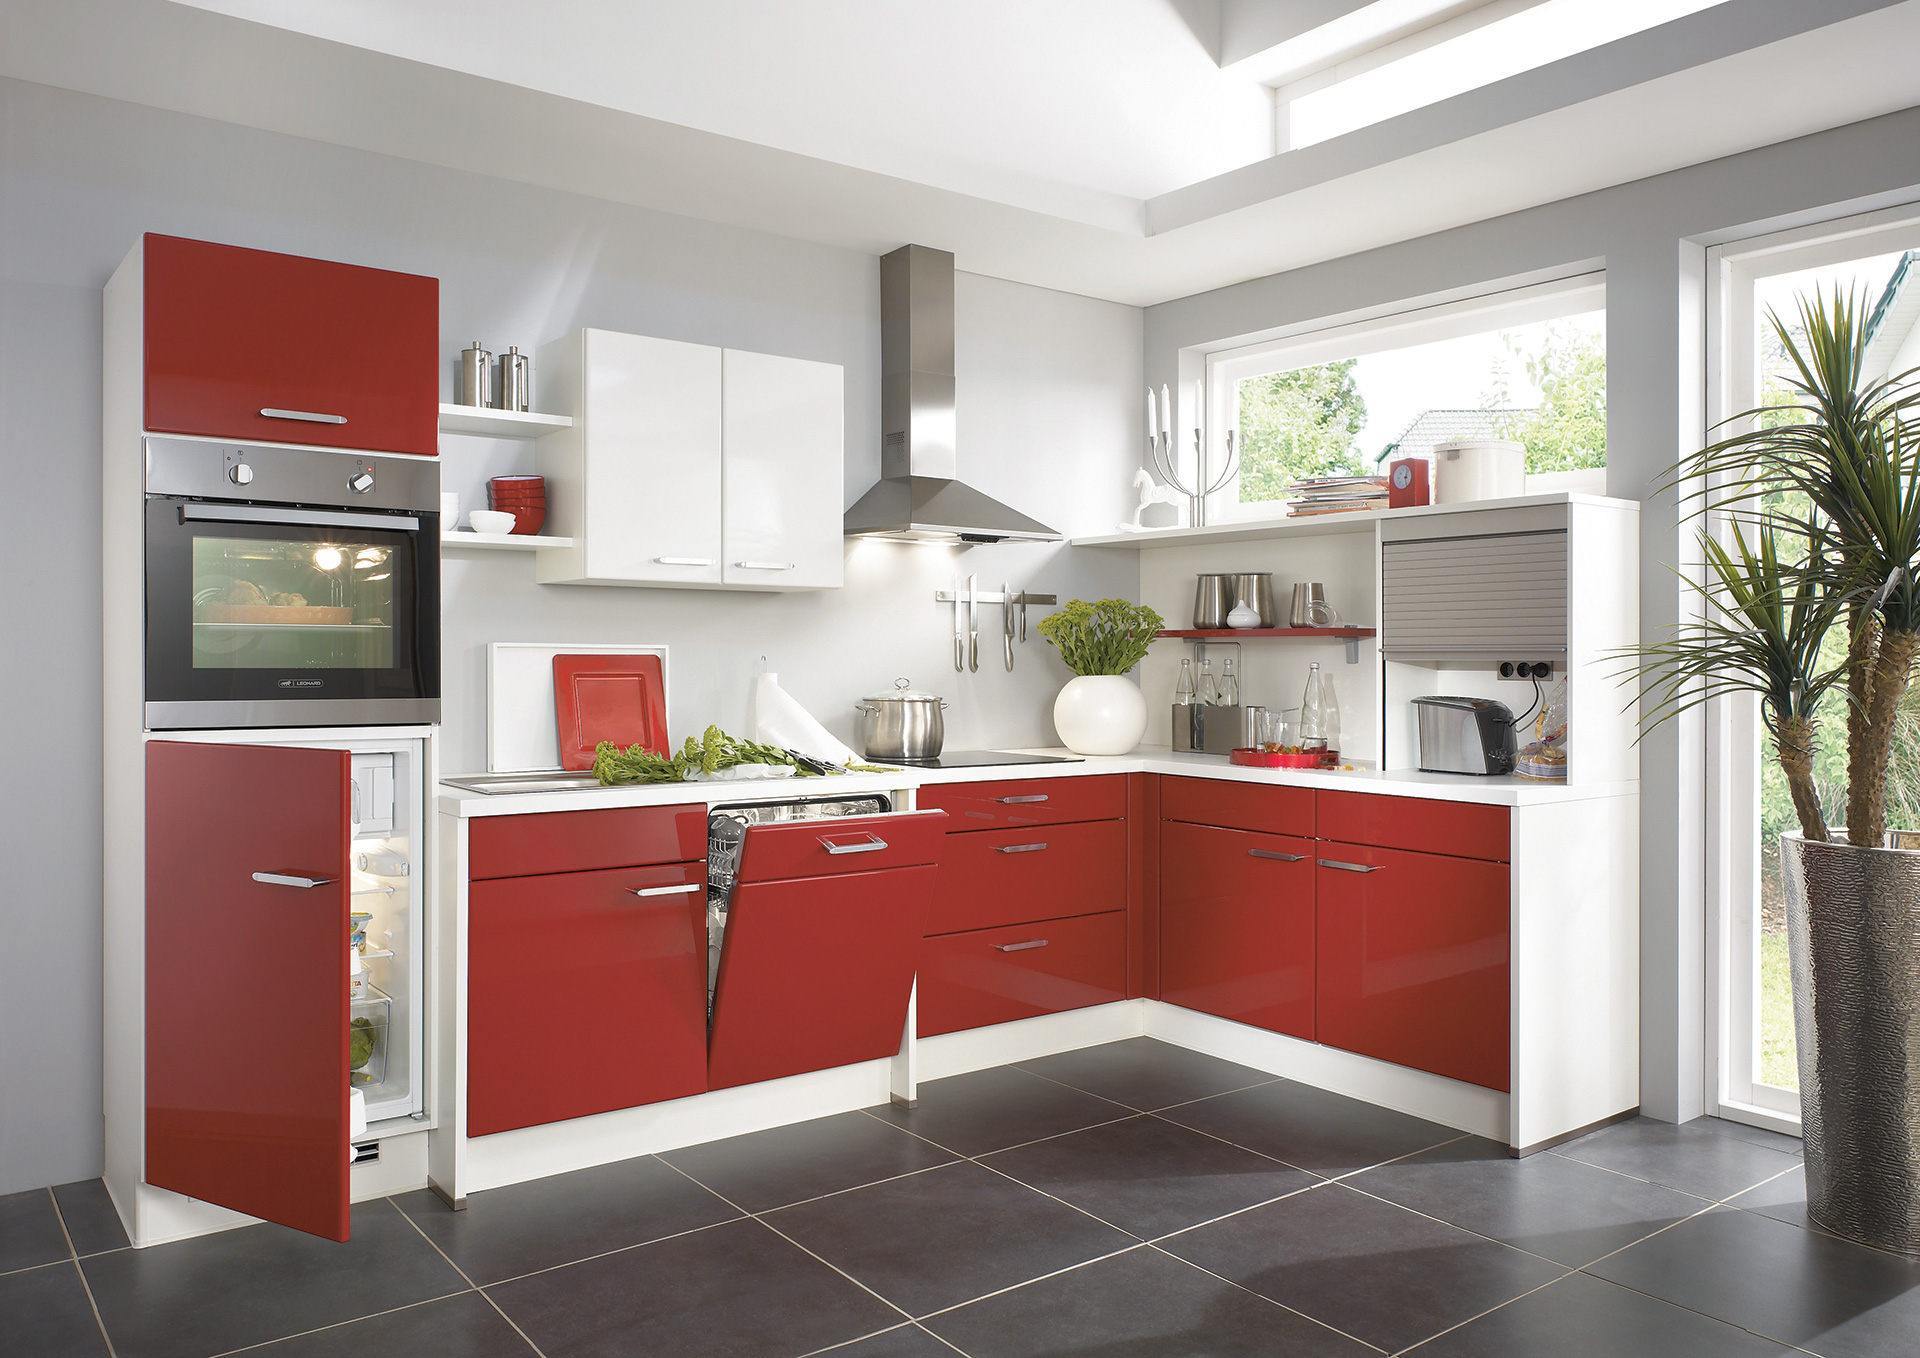 Design ideas for your home -The red color as part of the Kitchen